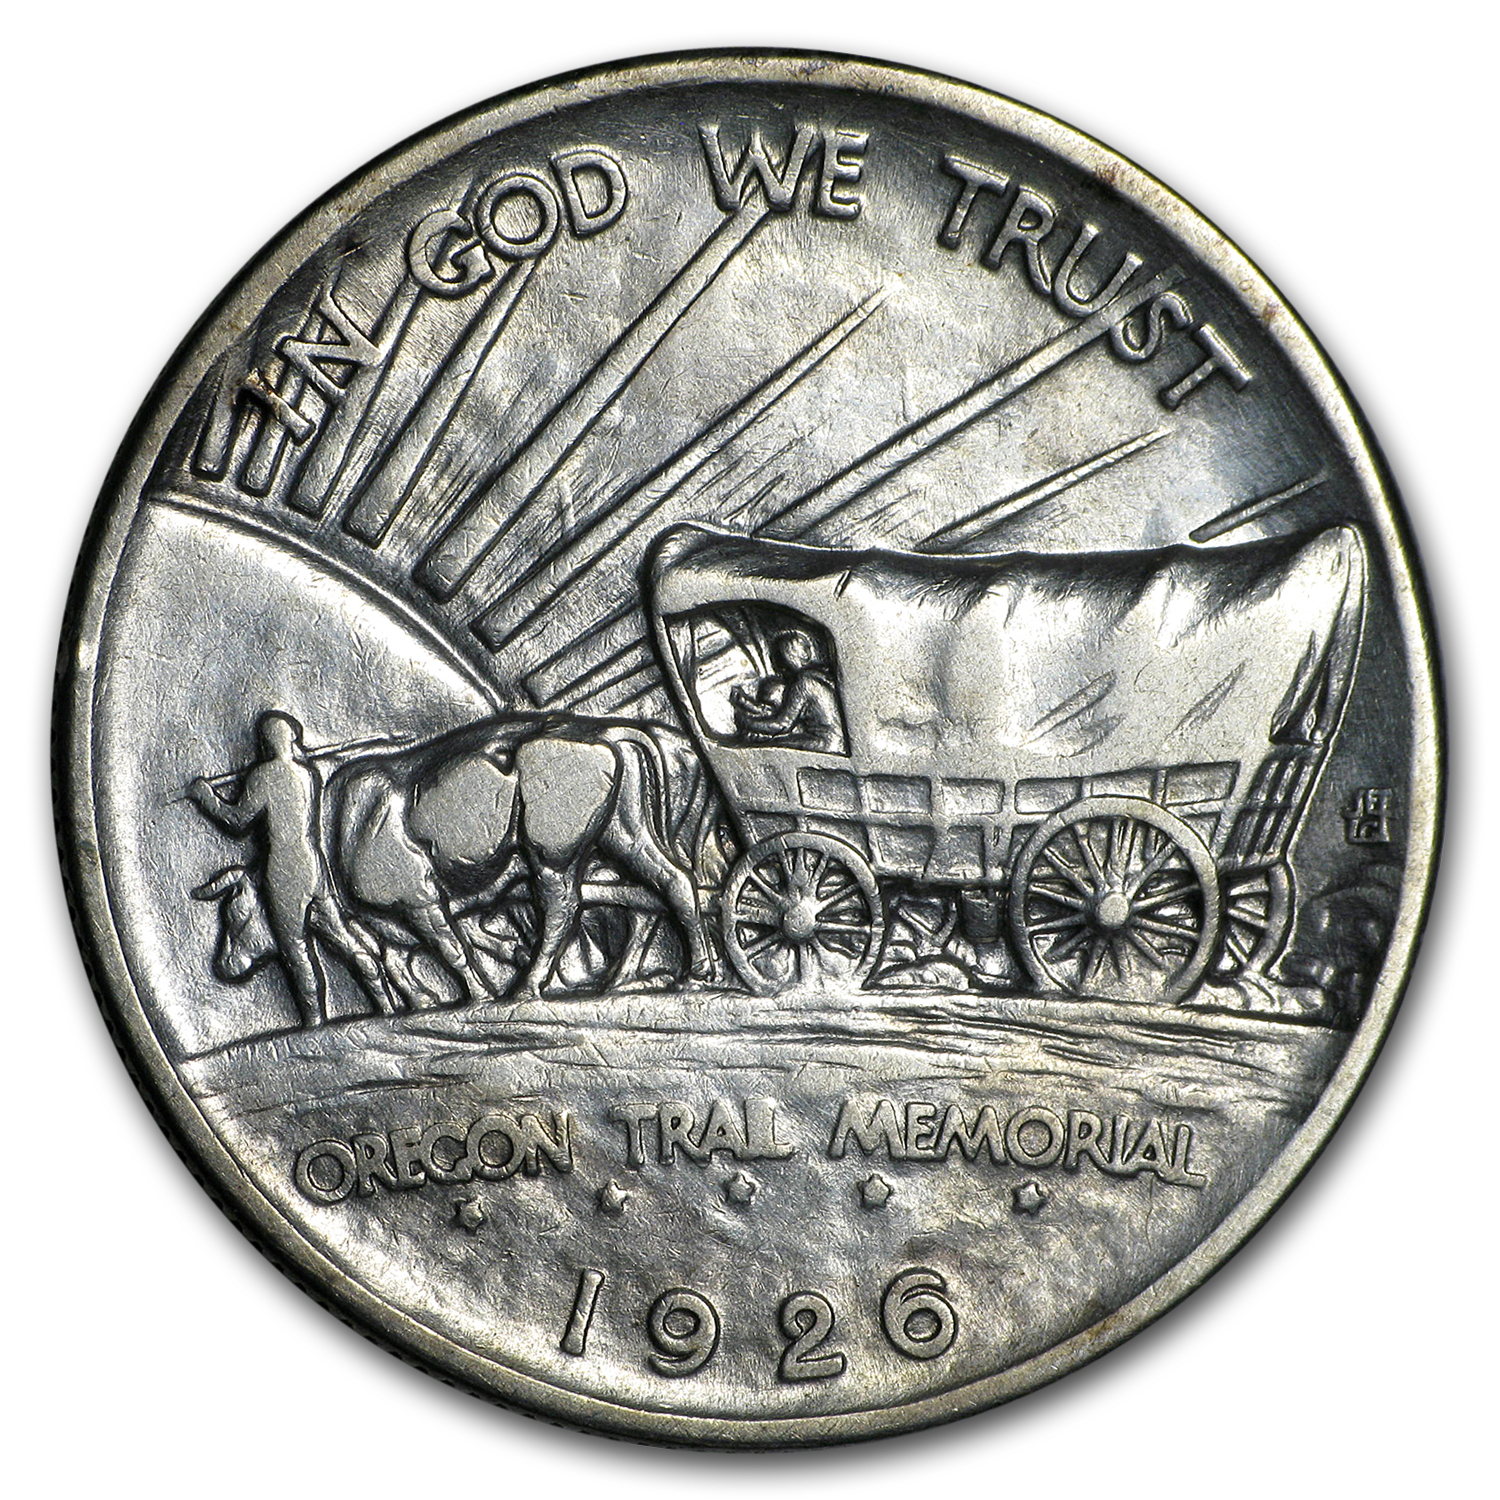 1926 Oregon Trail Memorial Half Commem Half AU